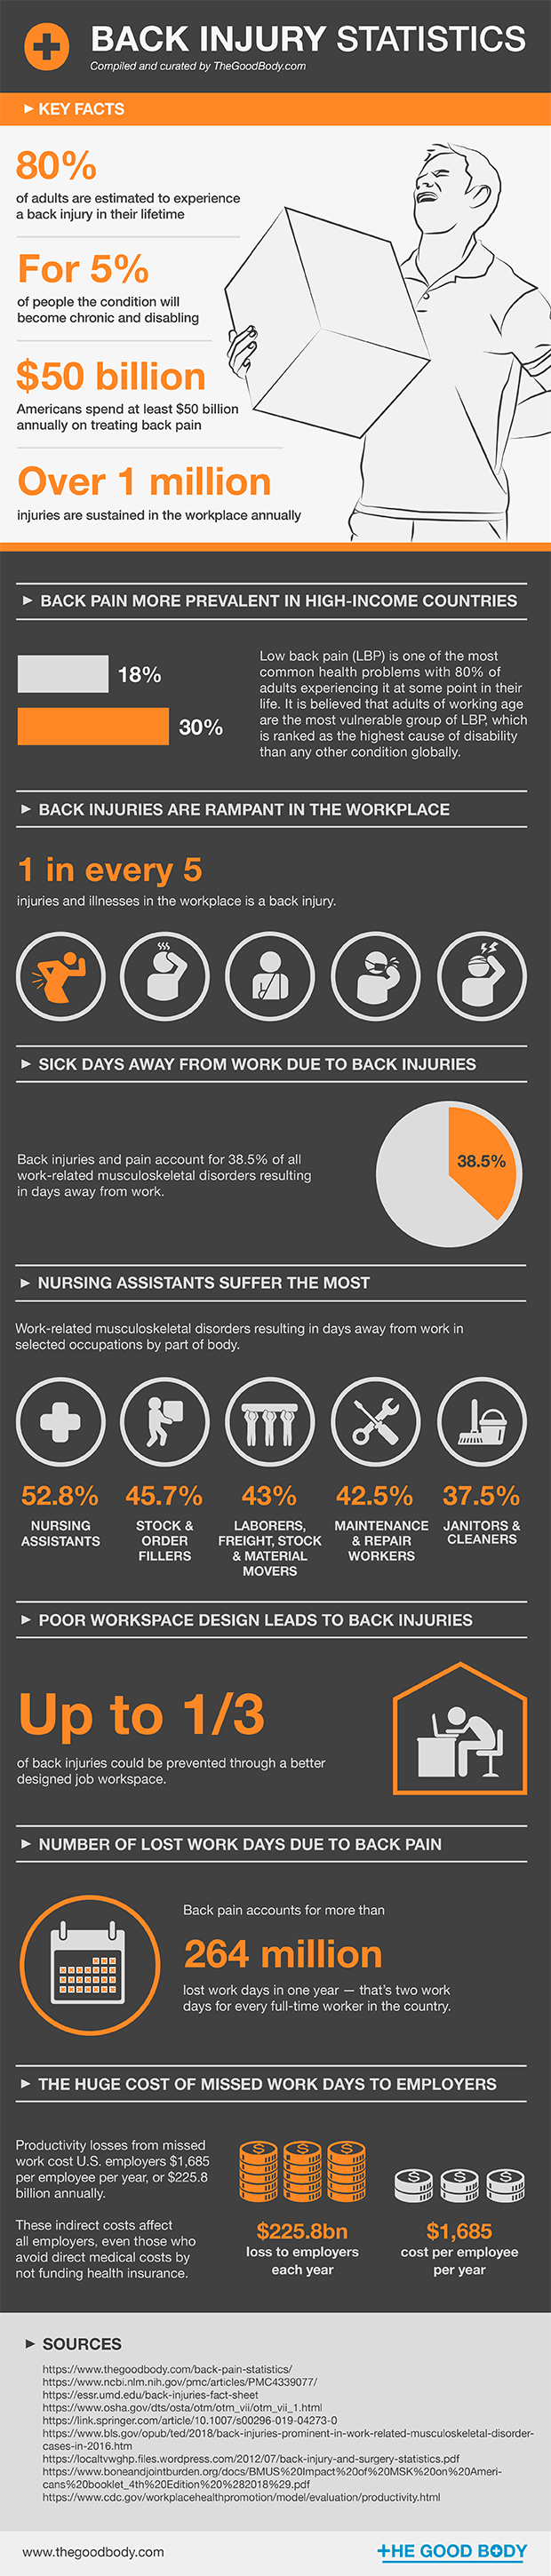 Back Injury Statistics – Compiled and curated by The Good Body